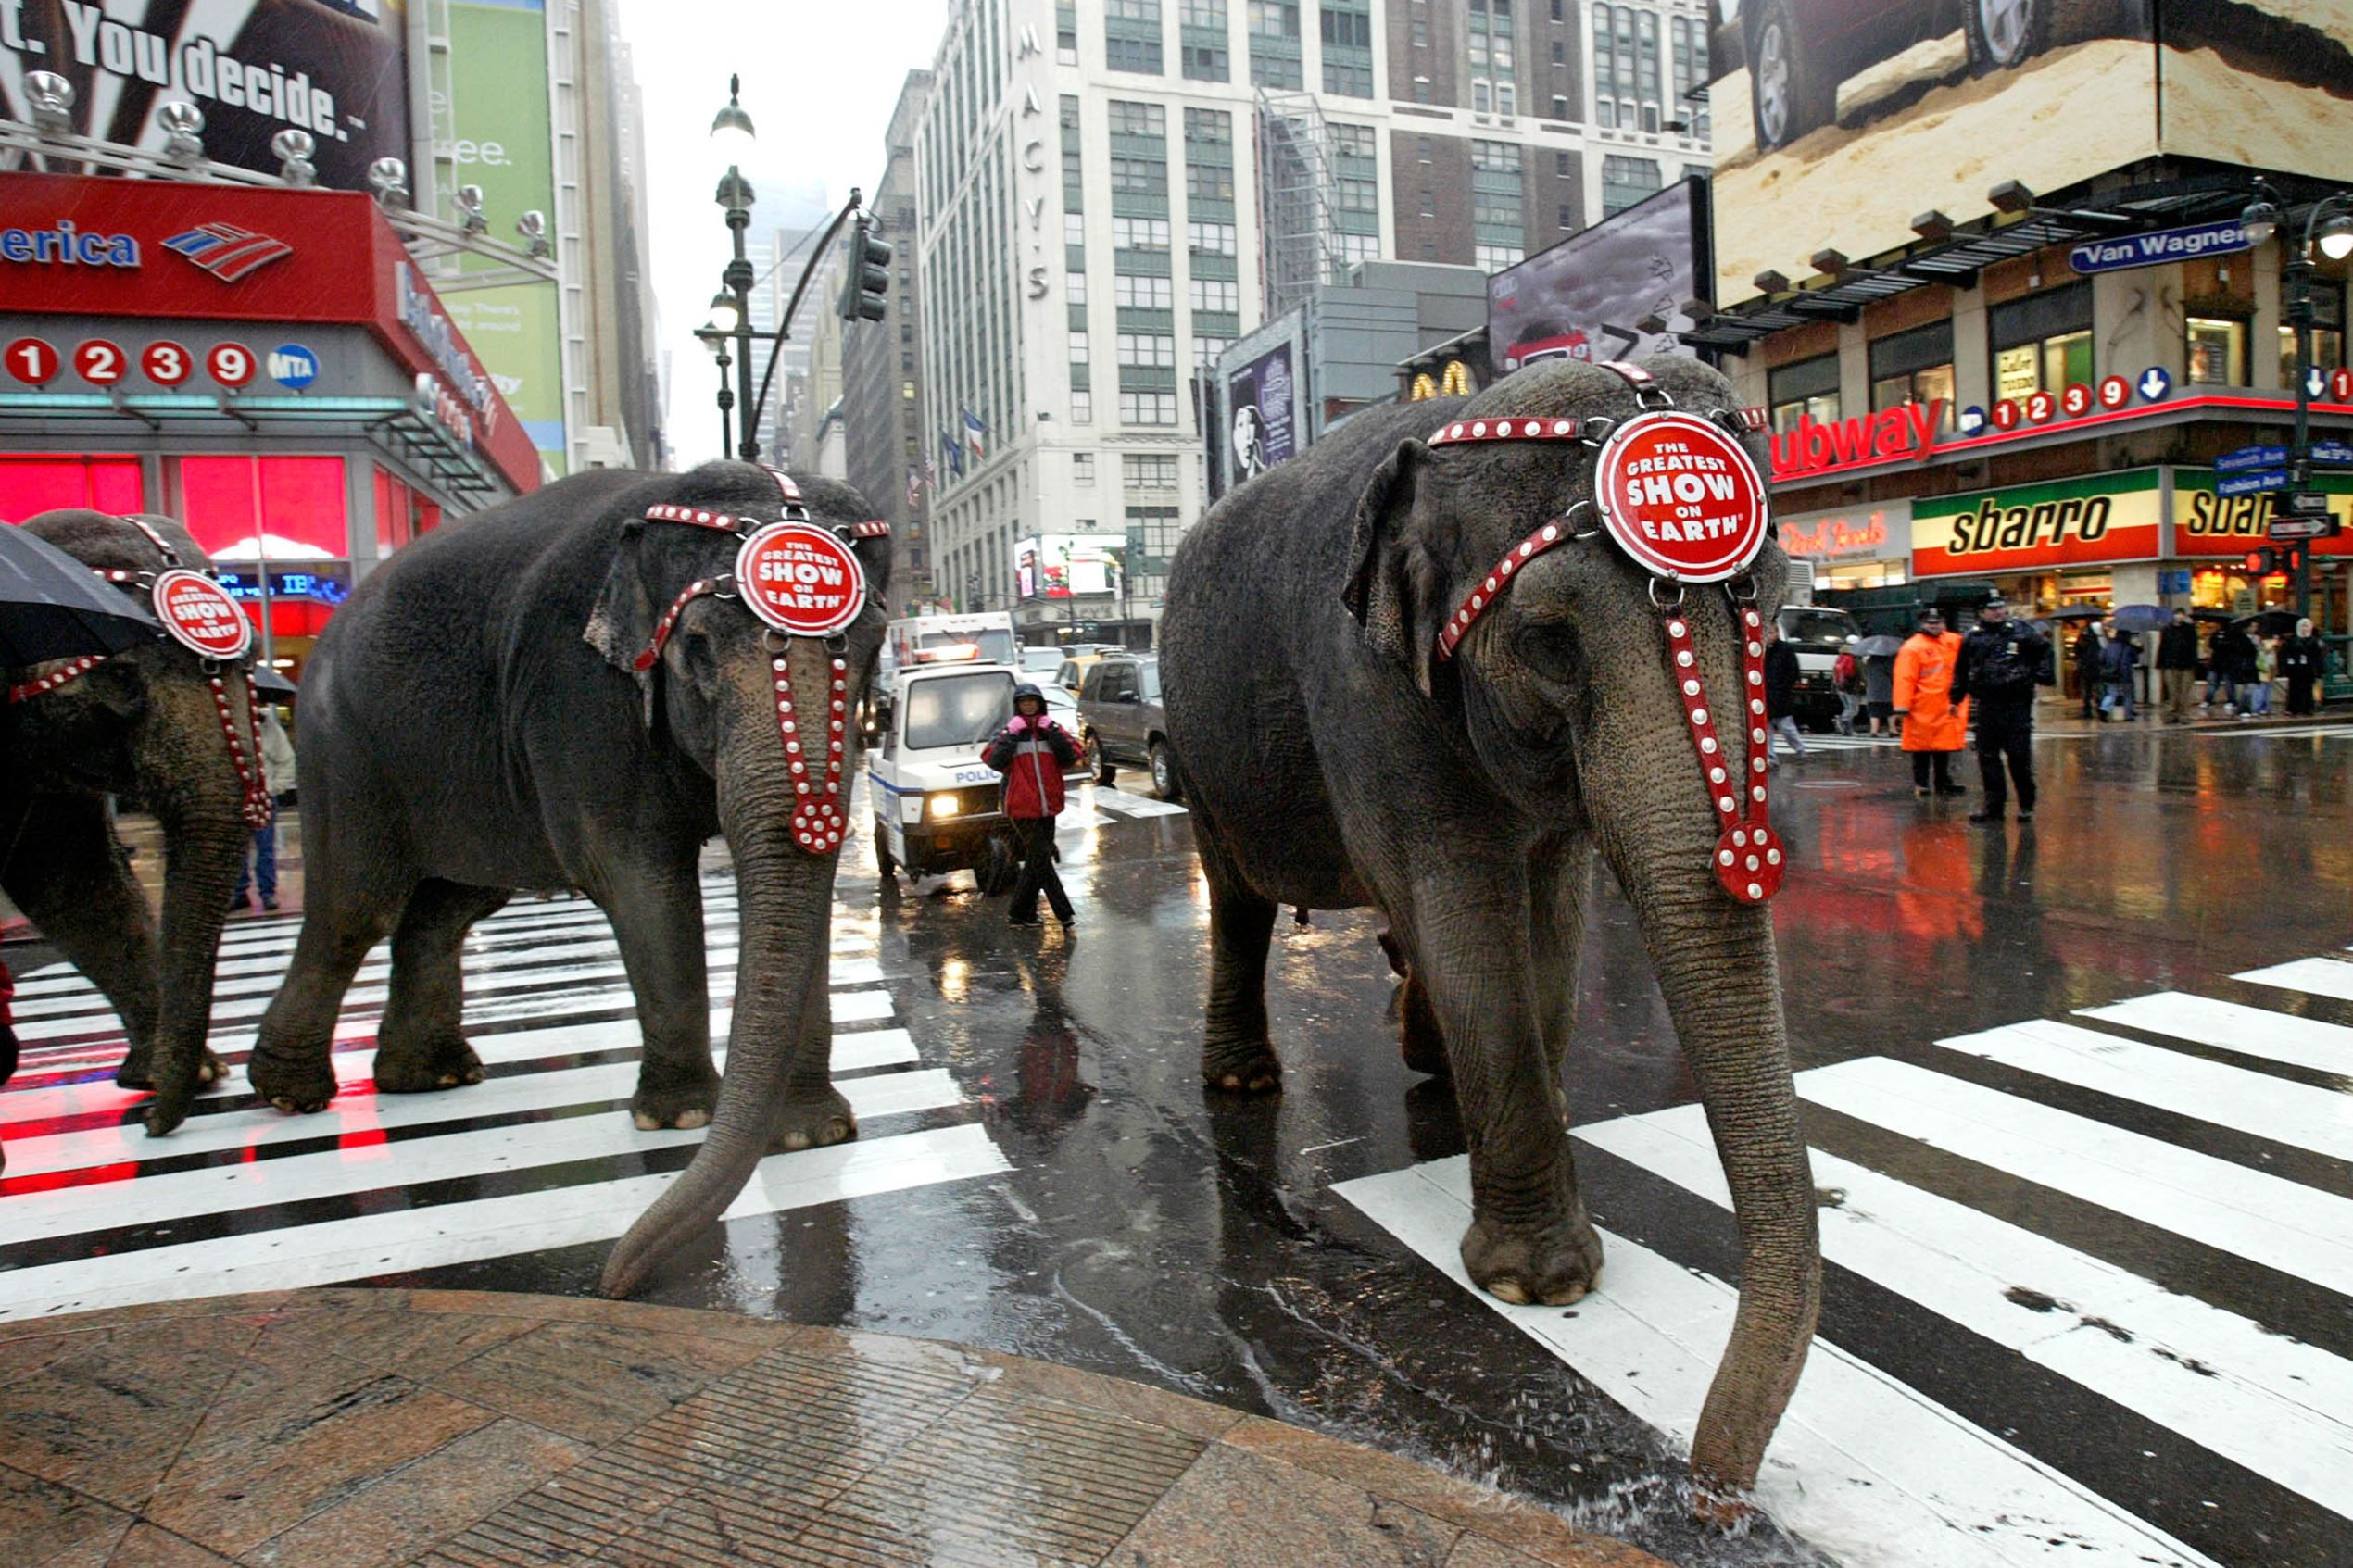 Protests That Made Companies Change Their Ways Public Space Ringling Brothers Circus Circus Animals